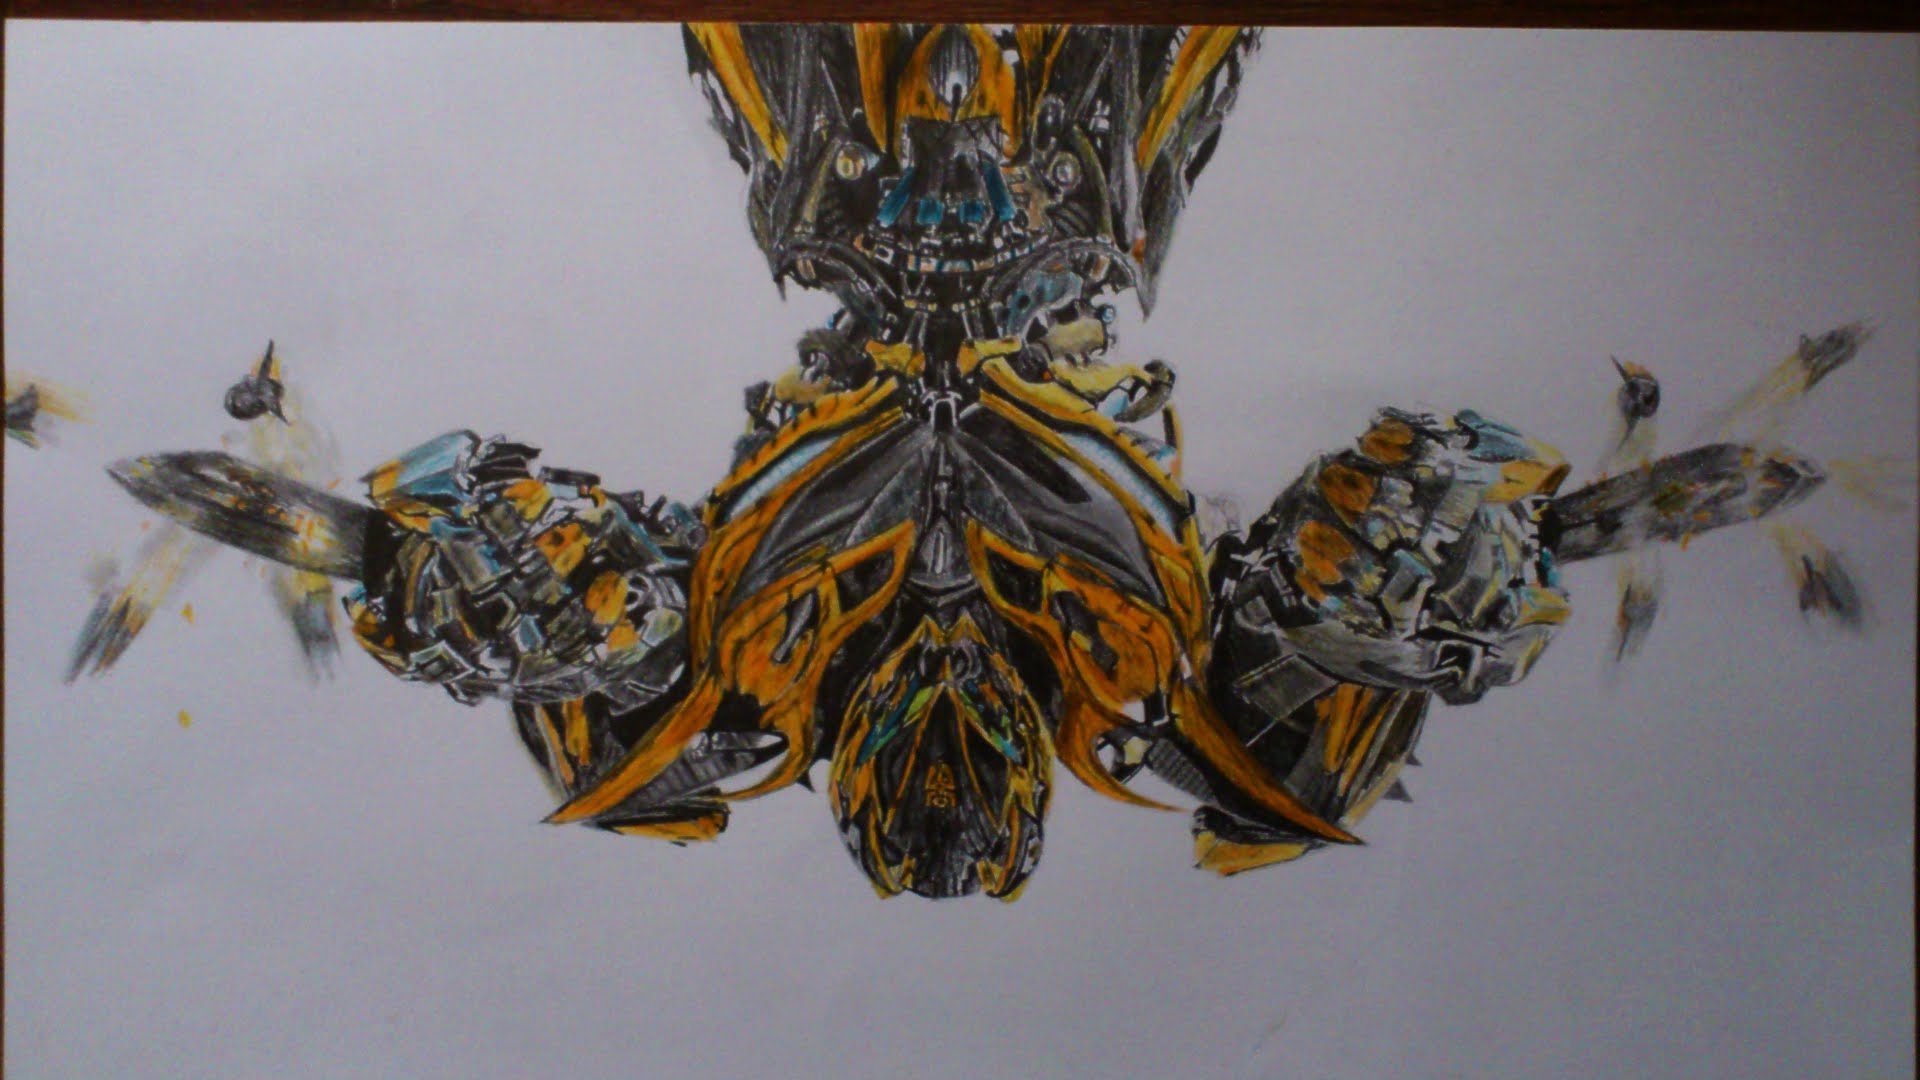 Drawn bumblebee transformers 5 Of Picture Age  YouTube